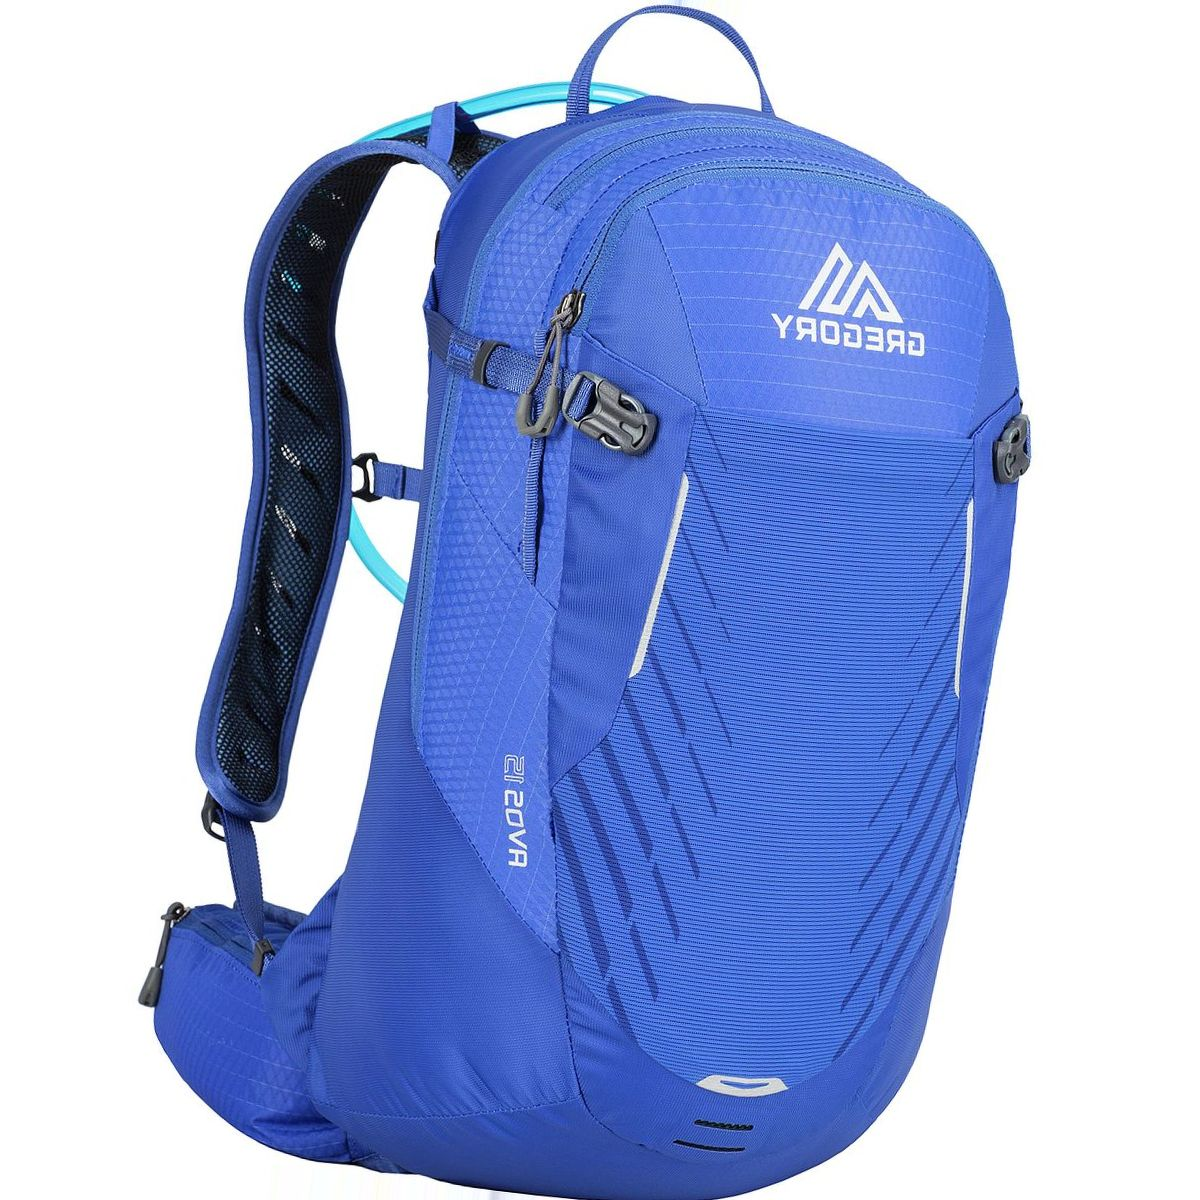 Gregory Avos 15 Hydration Backpack - Women's